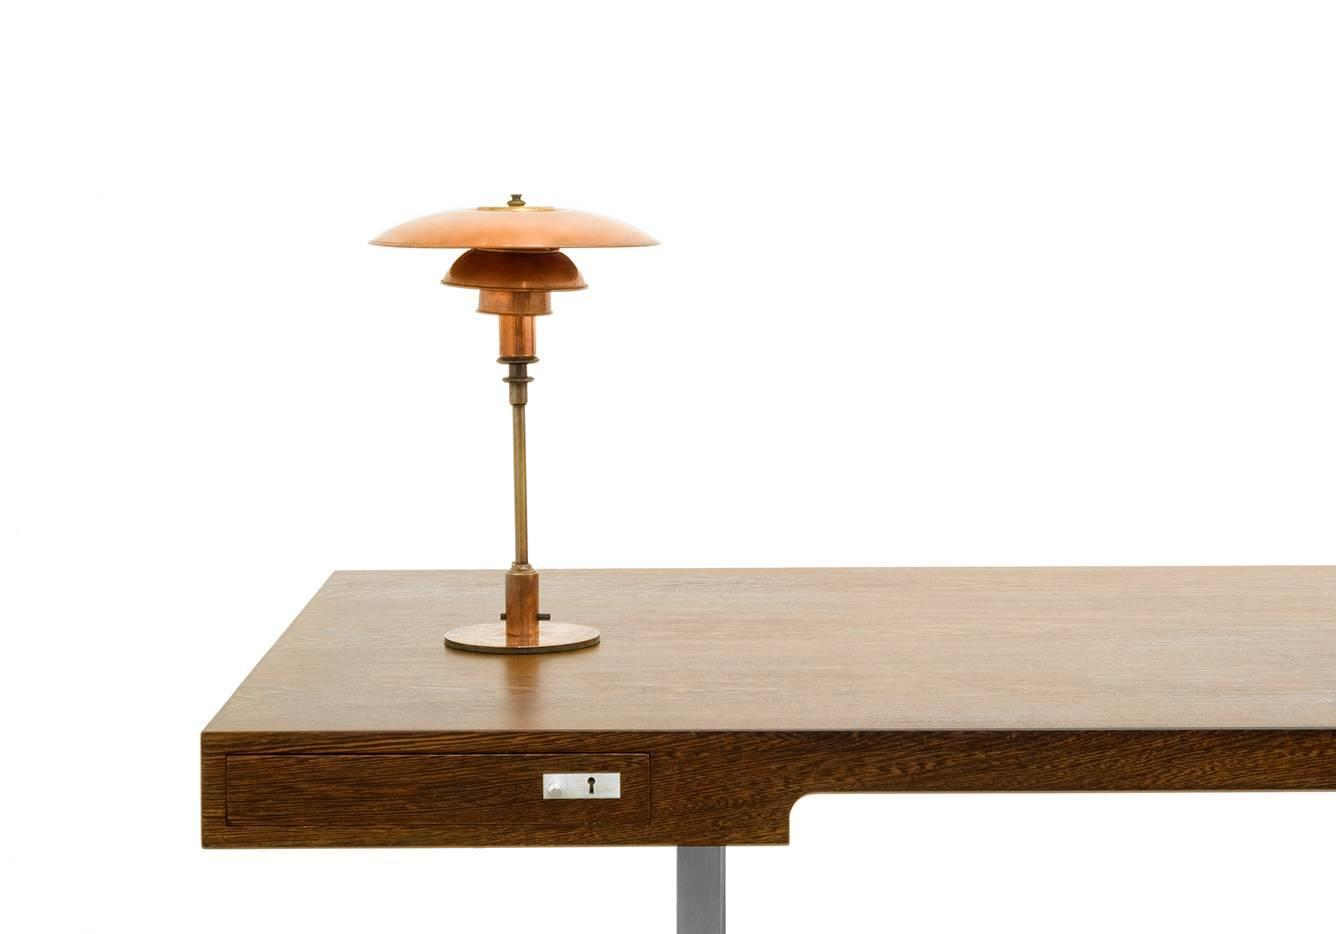 poul henningsen table lamp copper at 1stdibs. Black Bedroom Furniture Sets. Home Design Ideas